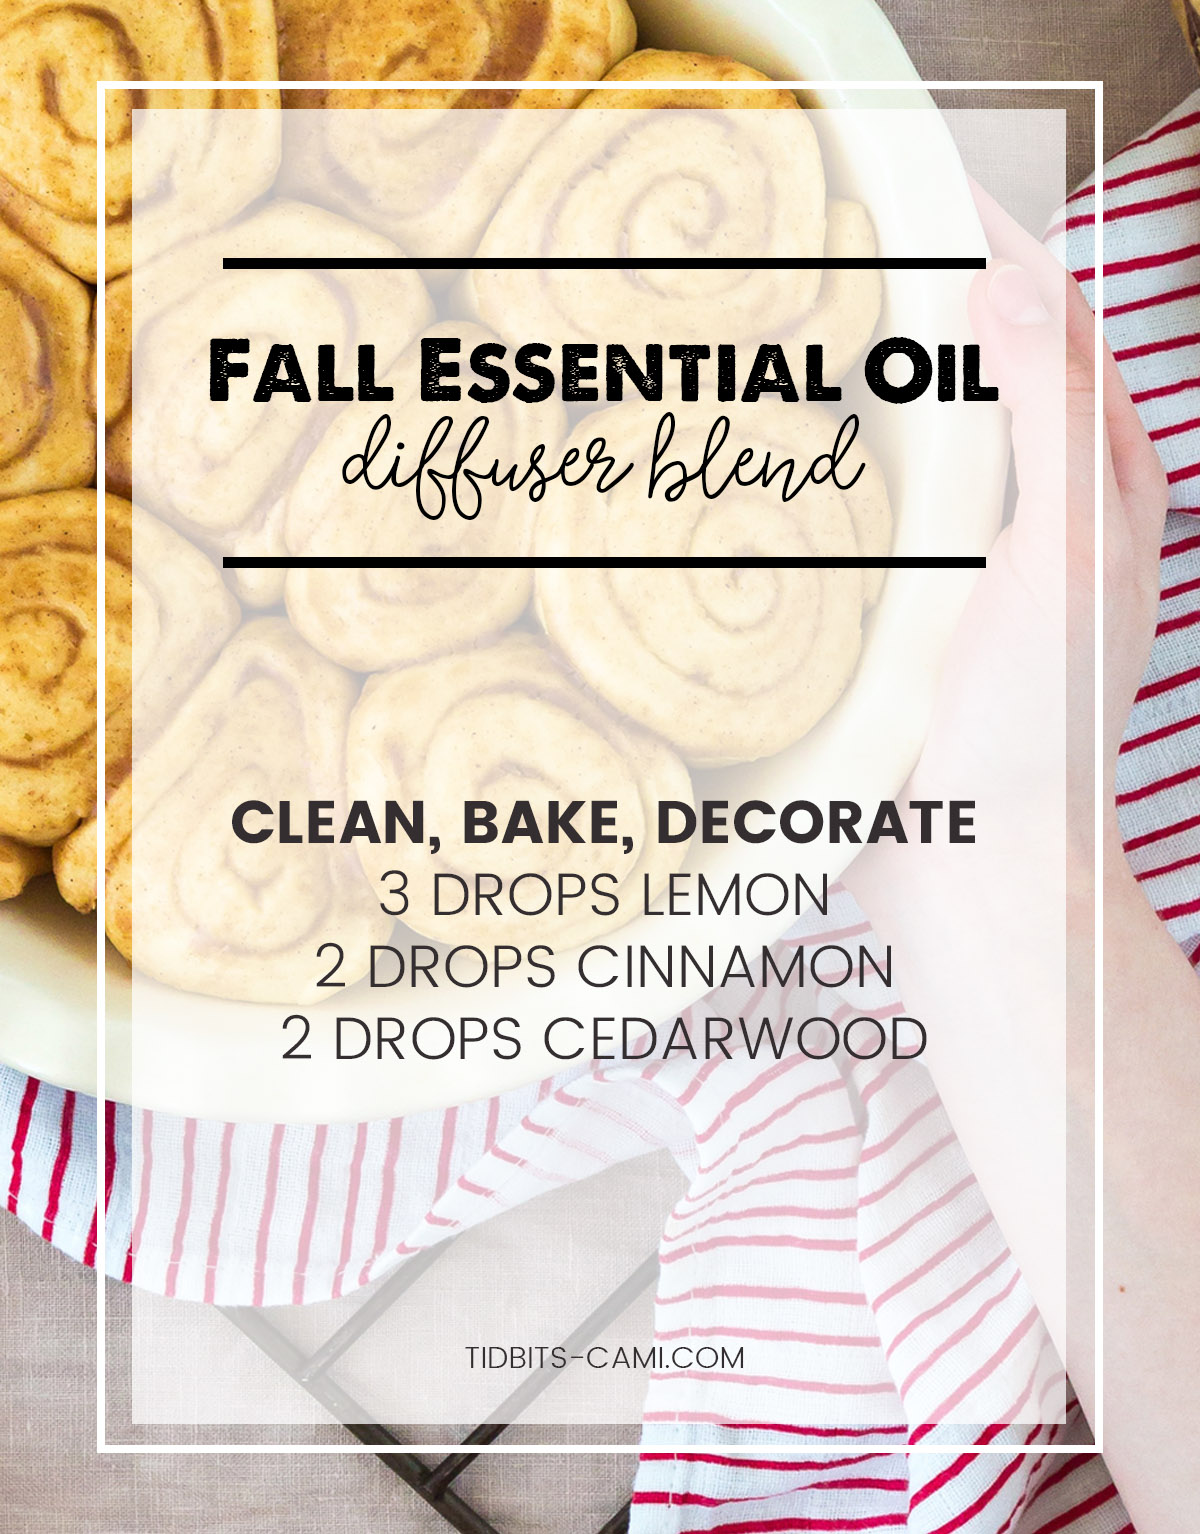 clean bake decorate essential oil diffuser blend